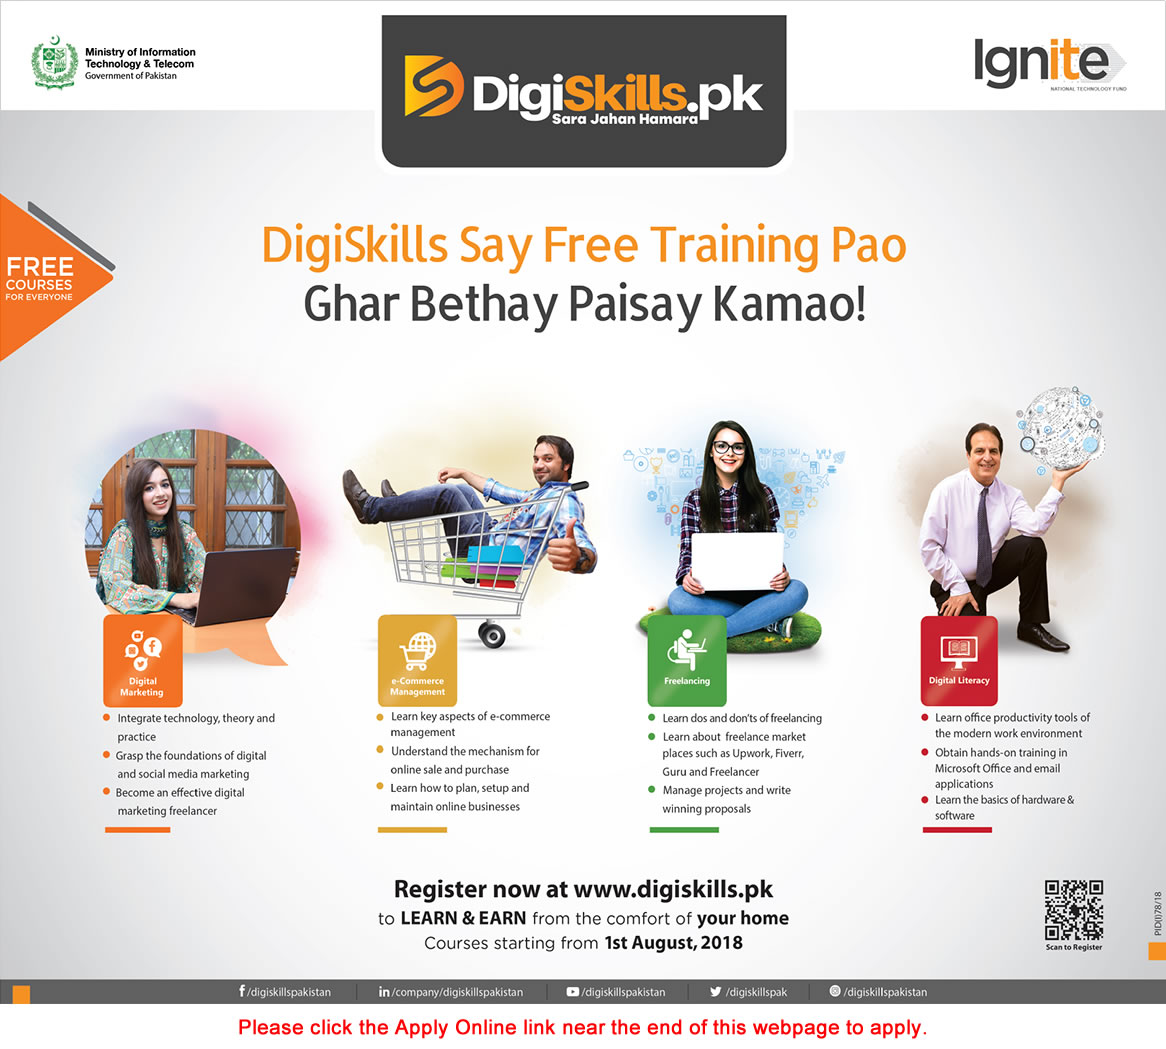 Digiskills Pakistan Free Online Courses 2018 July Apply Online Ministry of Information Technology & Telecom Latest